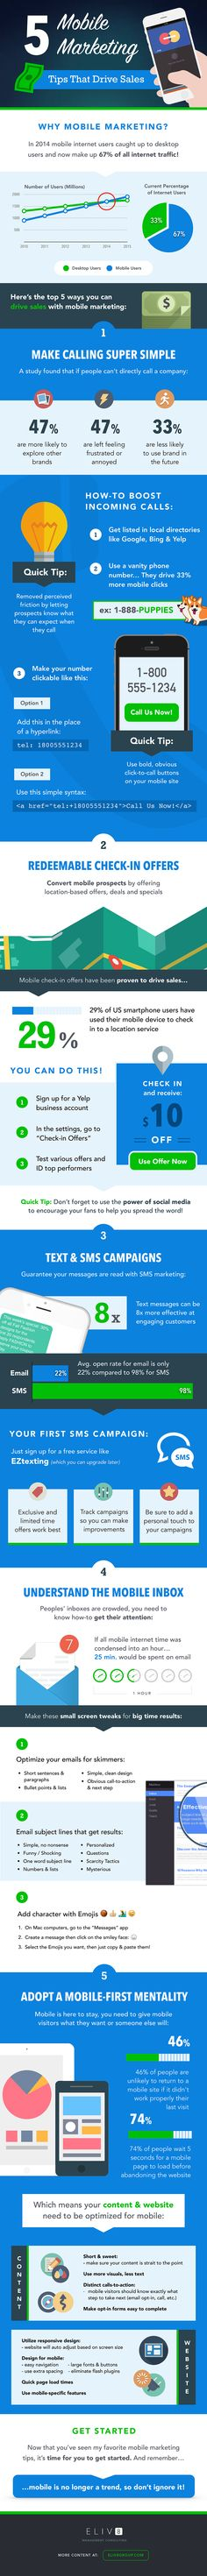 5 Mobile Marketing Tips That Drive Sales (Infographic)